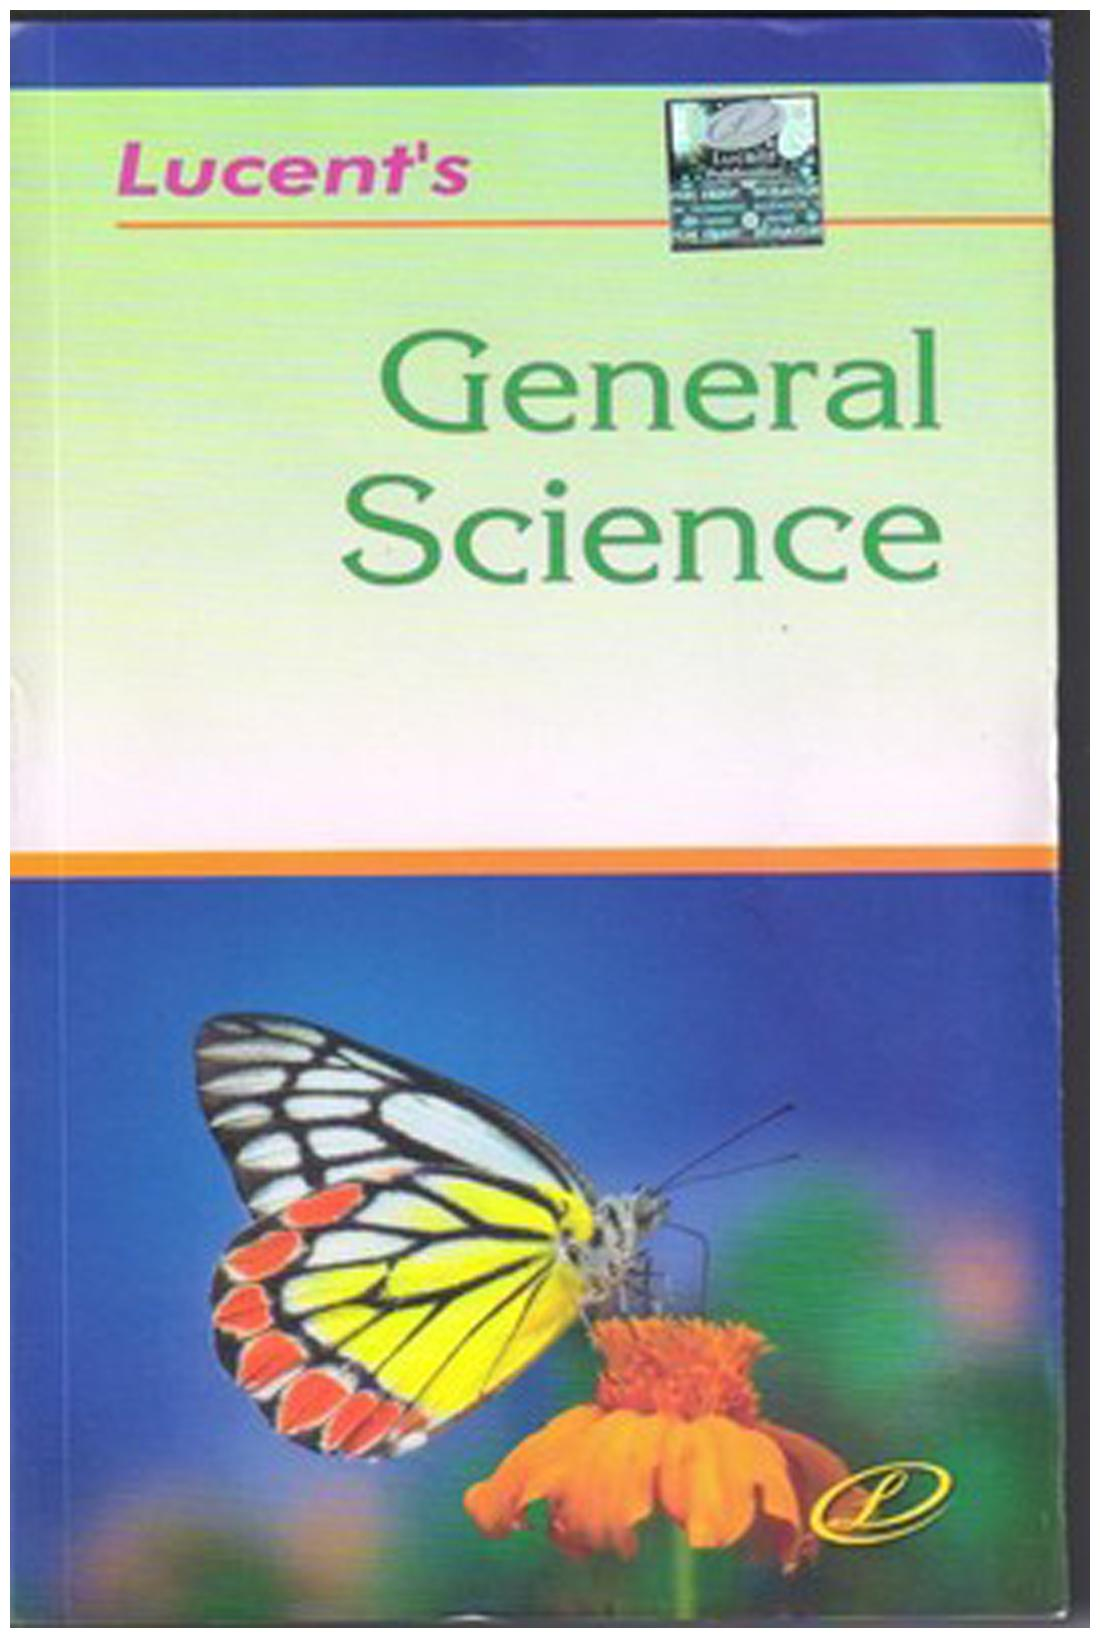 Lucent's General Science